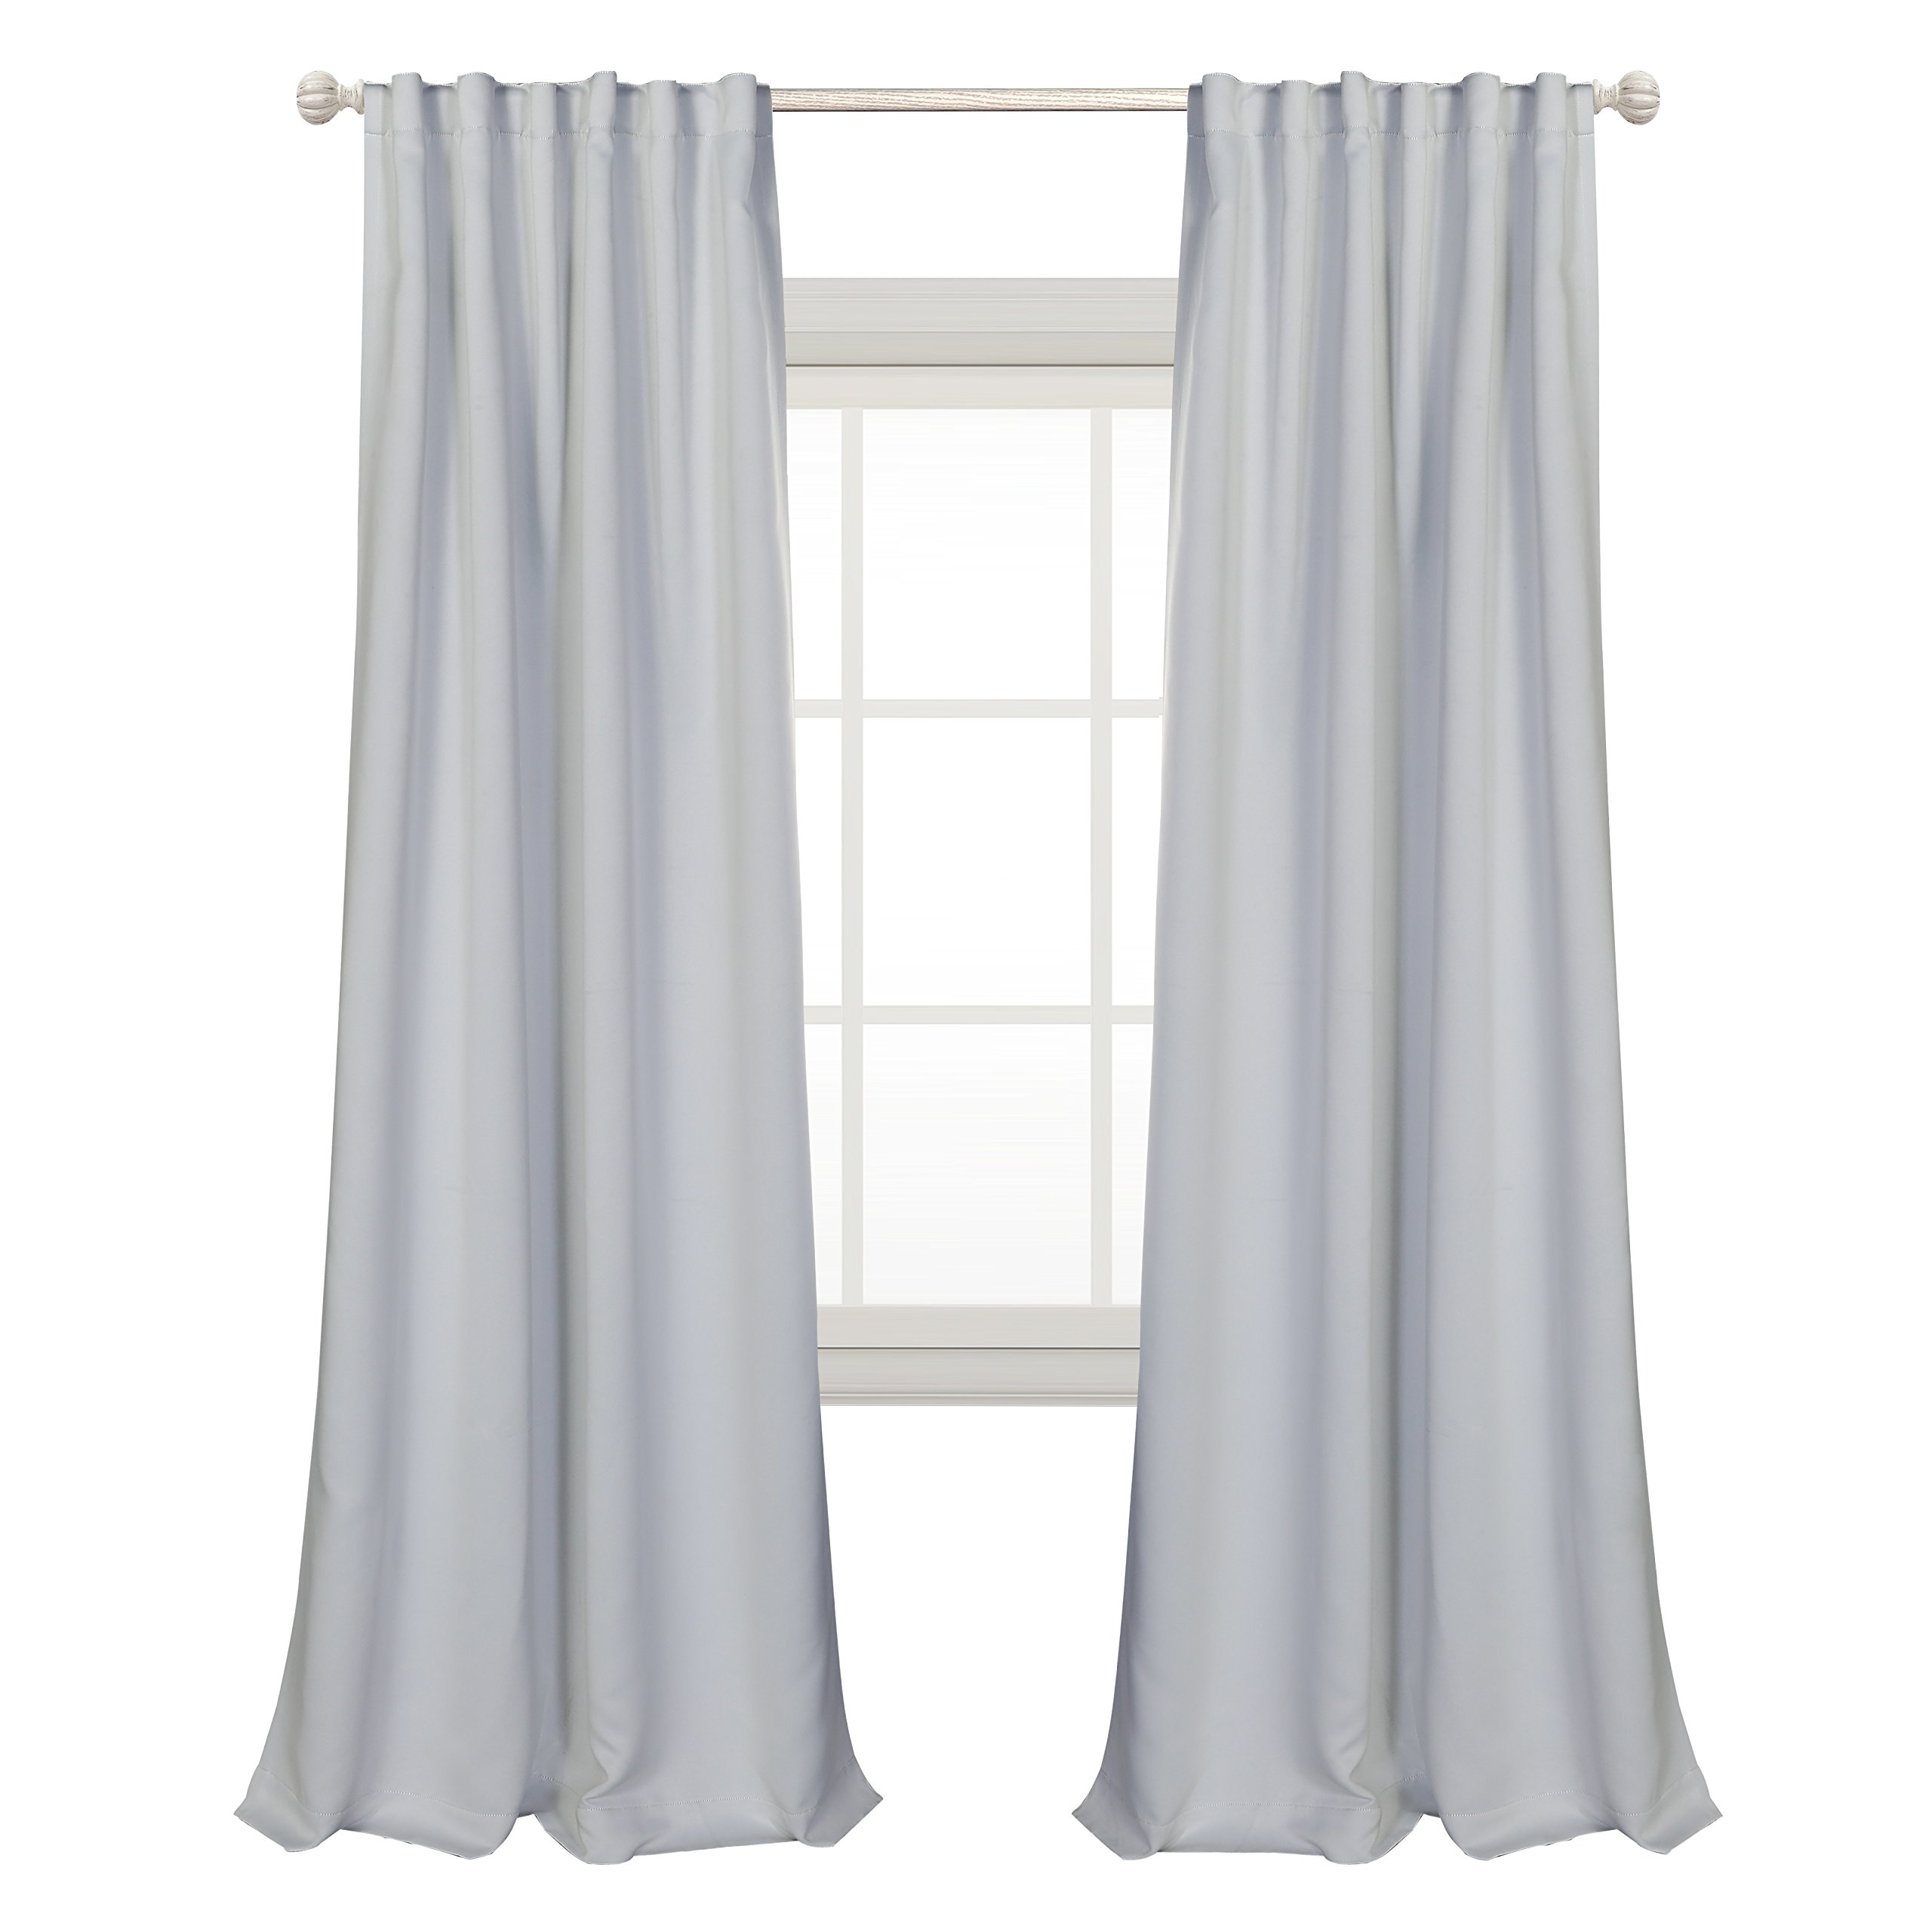 MYSKY HOME Thermal Insulated Curtain Drapes Back Tab and Rod Pocket Blackout Curtains for Living Room, 52 x 84 Inches, Greyish White (2 Panel Set)